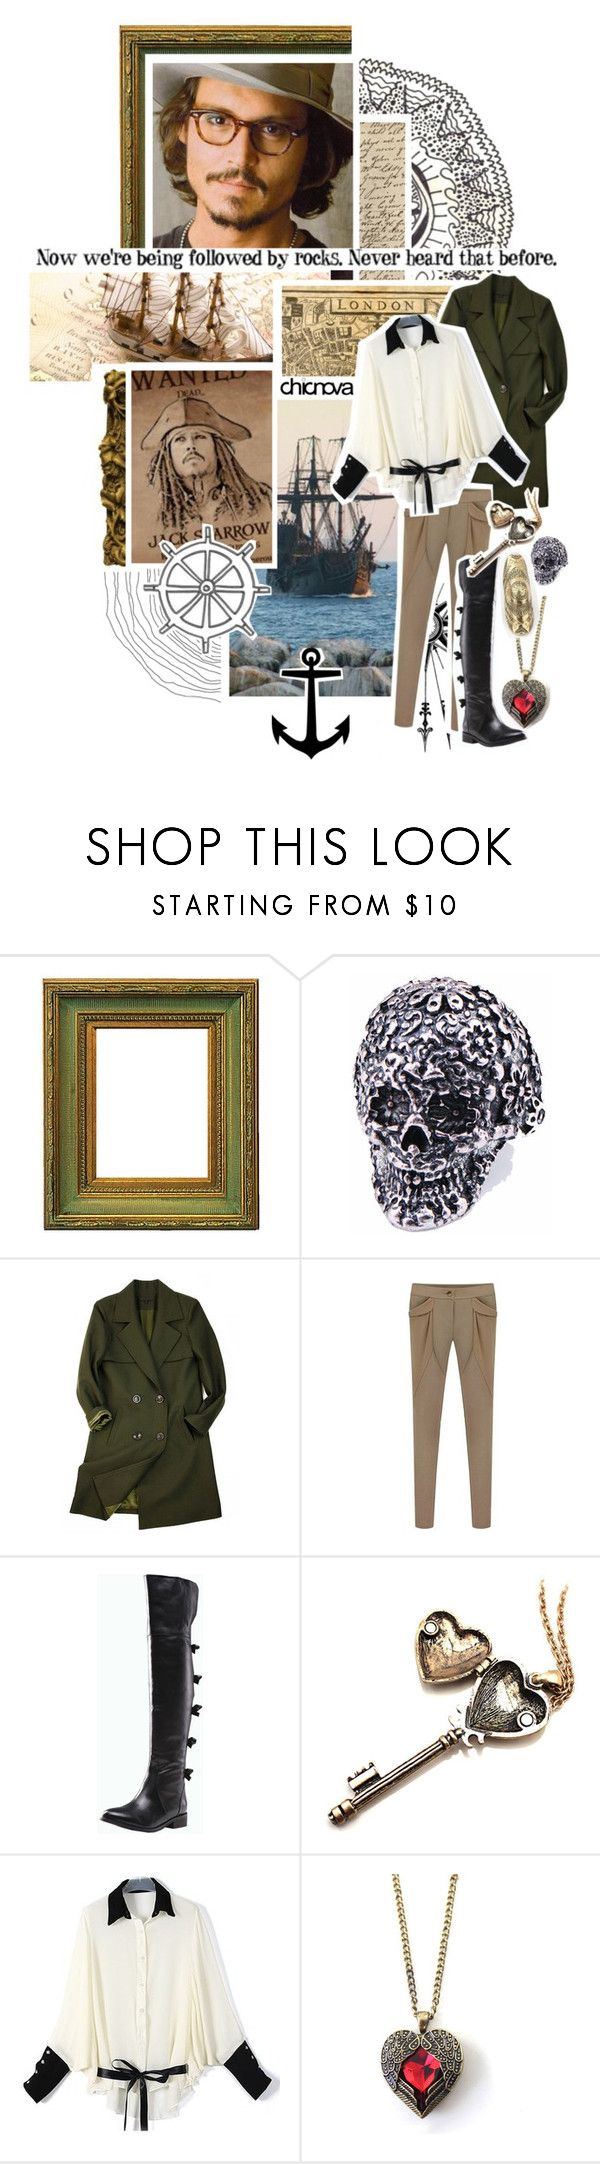 """""""Pirate CHICNOVA 17."""" by kariika ❤ liked on Polyvore featuring vintage, harem pants, anchor jewelry, boater hats, compass, pendant, pirates of caribbean, quotes, military coat and johnny depp"""